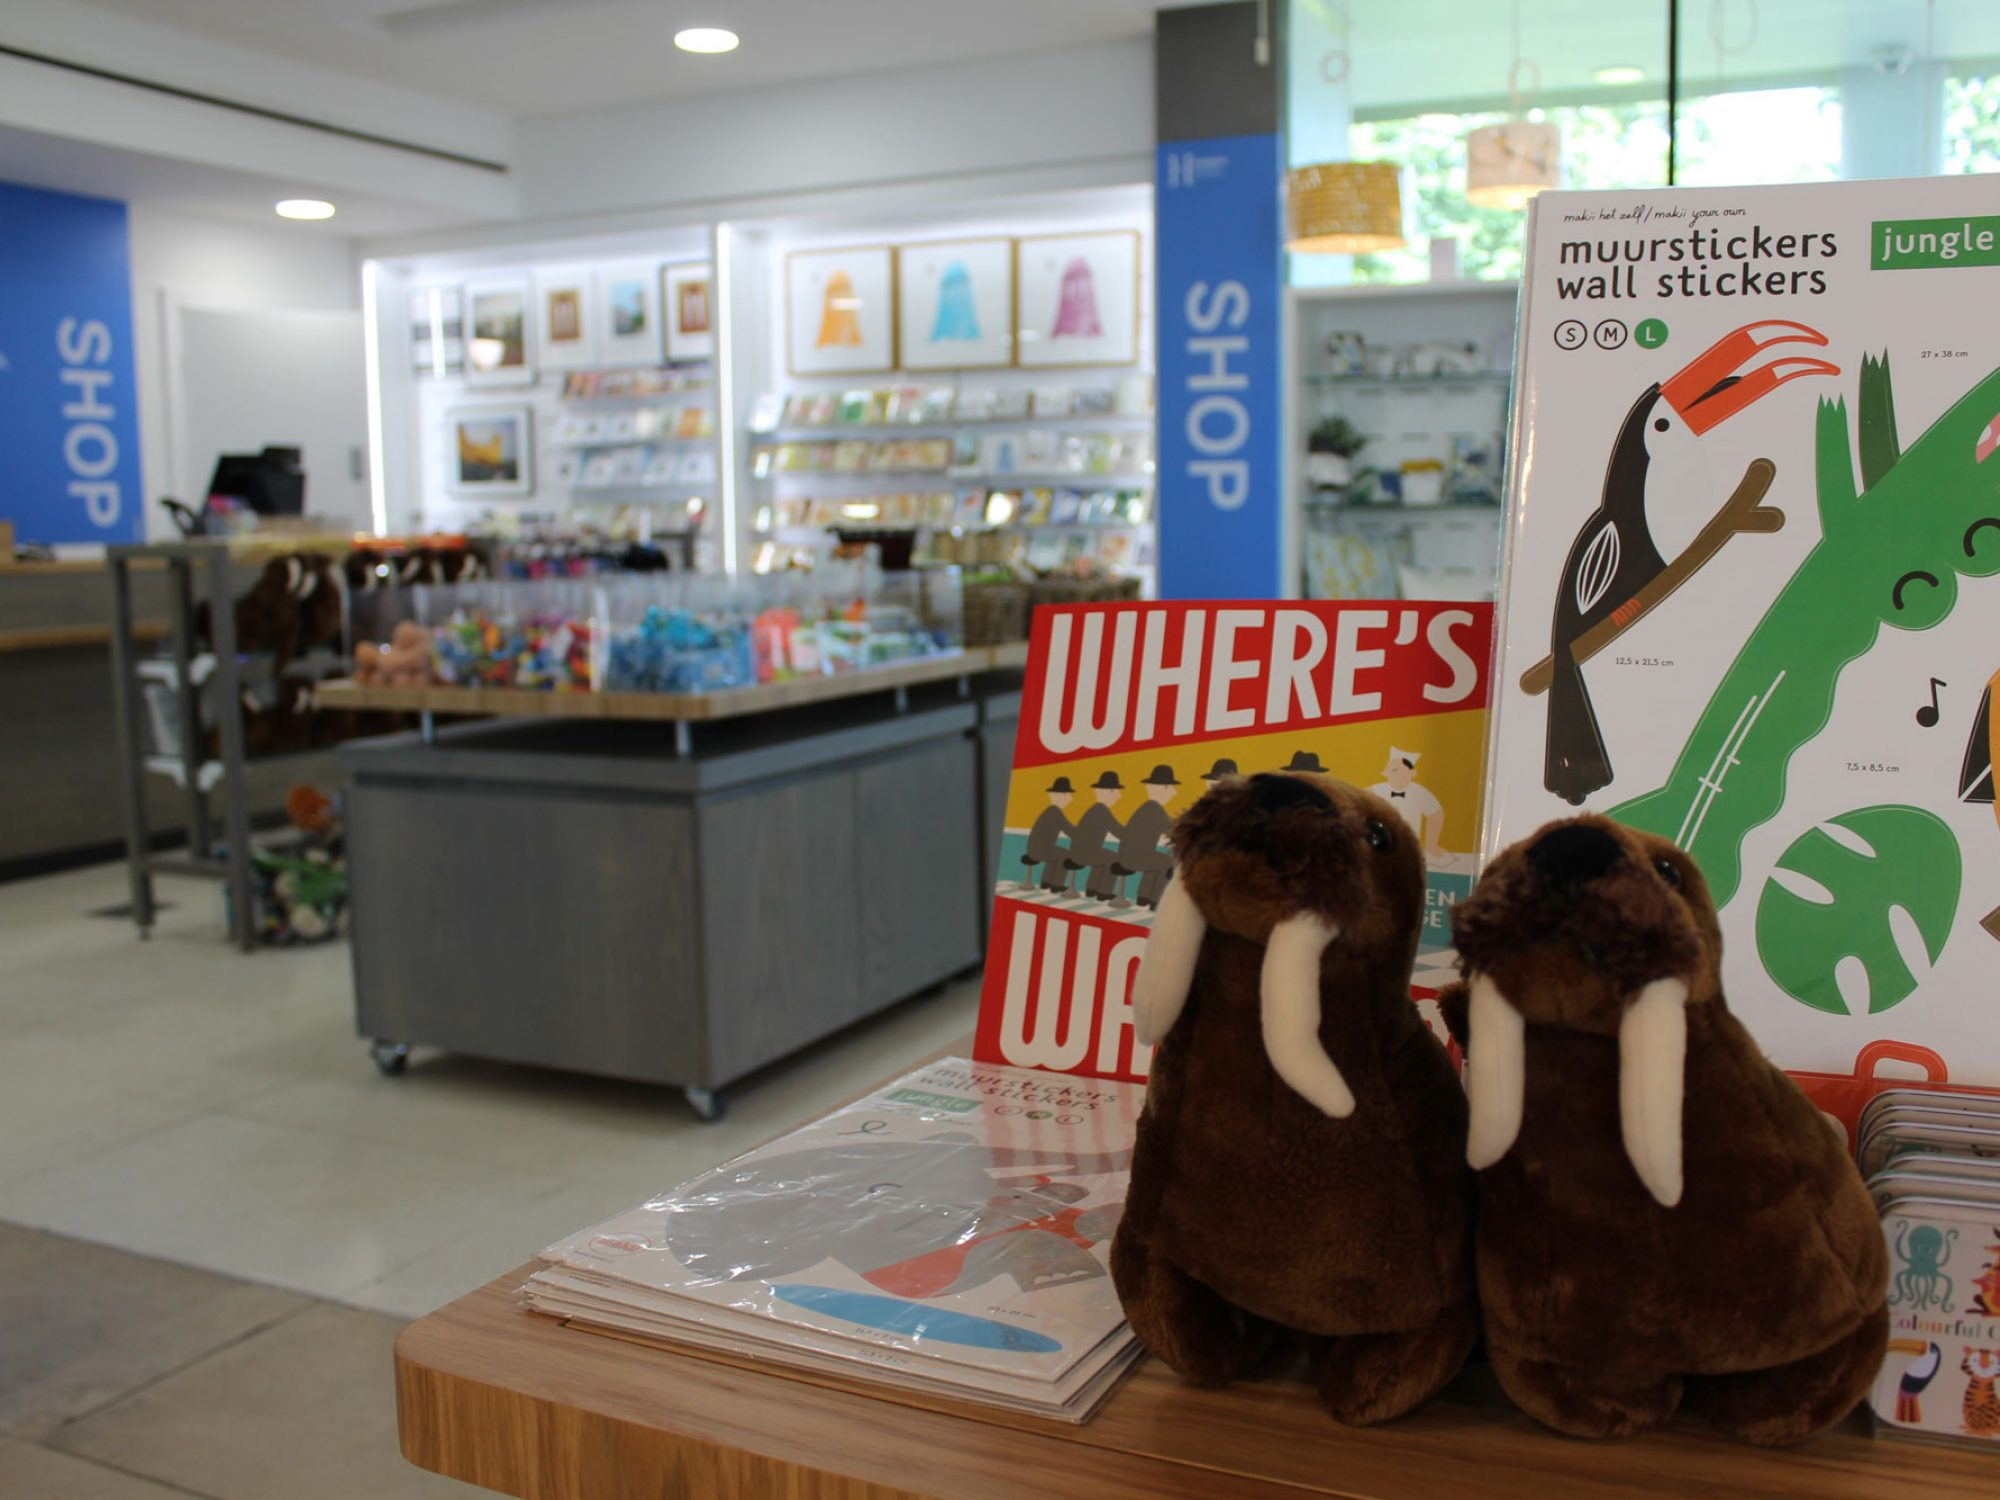 A shop display featuring two stuffed walrus toys, and some brightly coloured books are in the foreground. In the background is a shop with displays of cards, and tables with smaller goods on them.